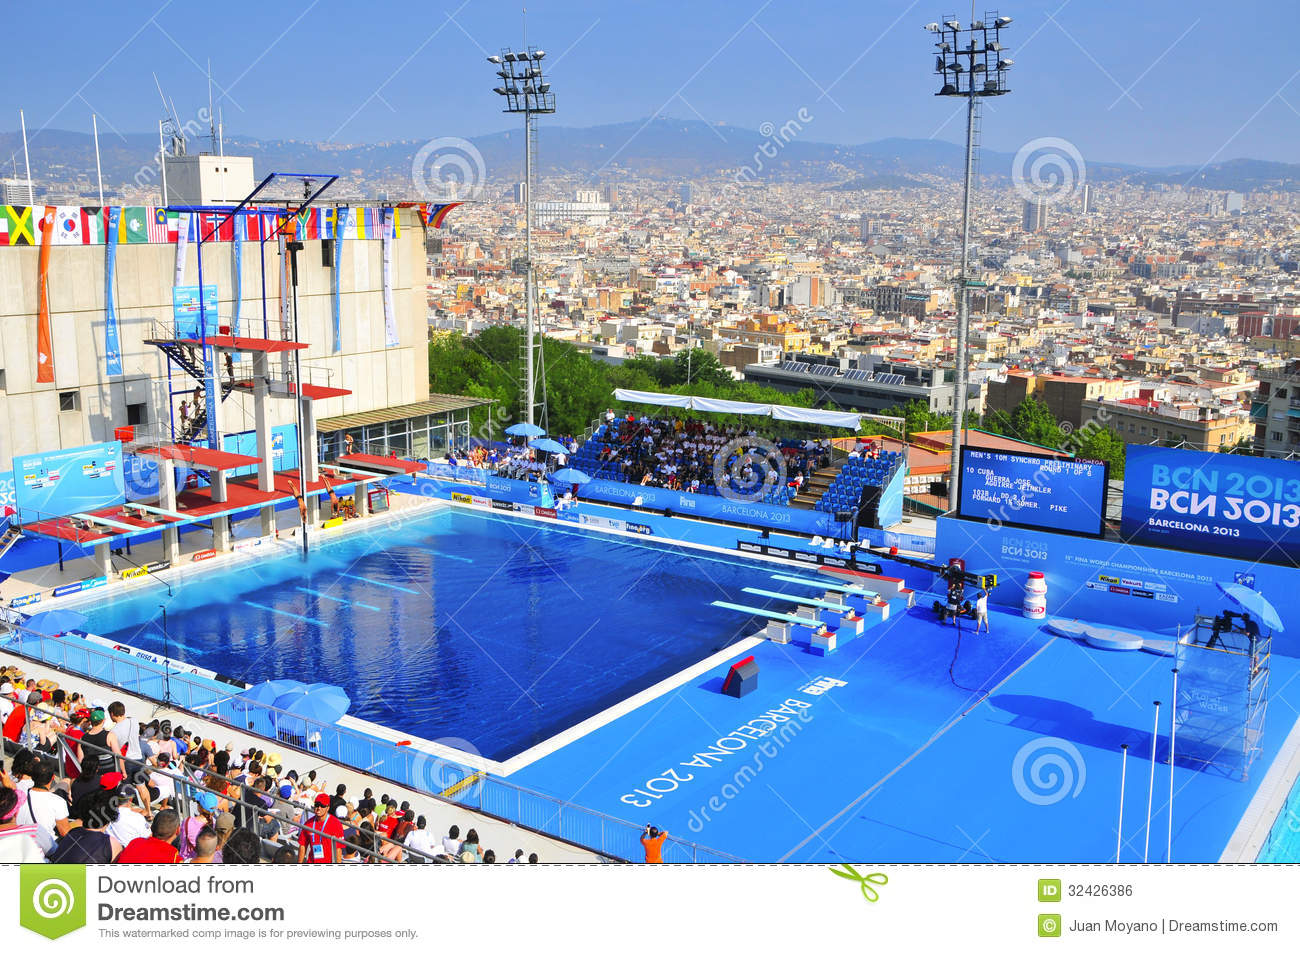 2013 world aquatics championships in barcelona spain for Piscina montjuic barcelona